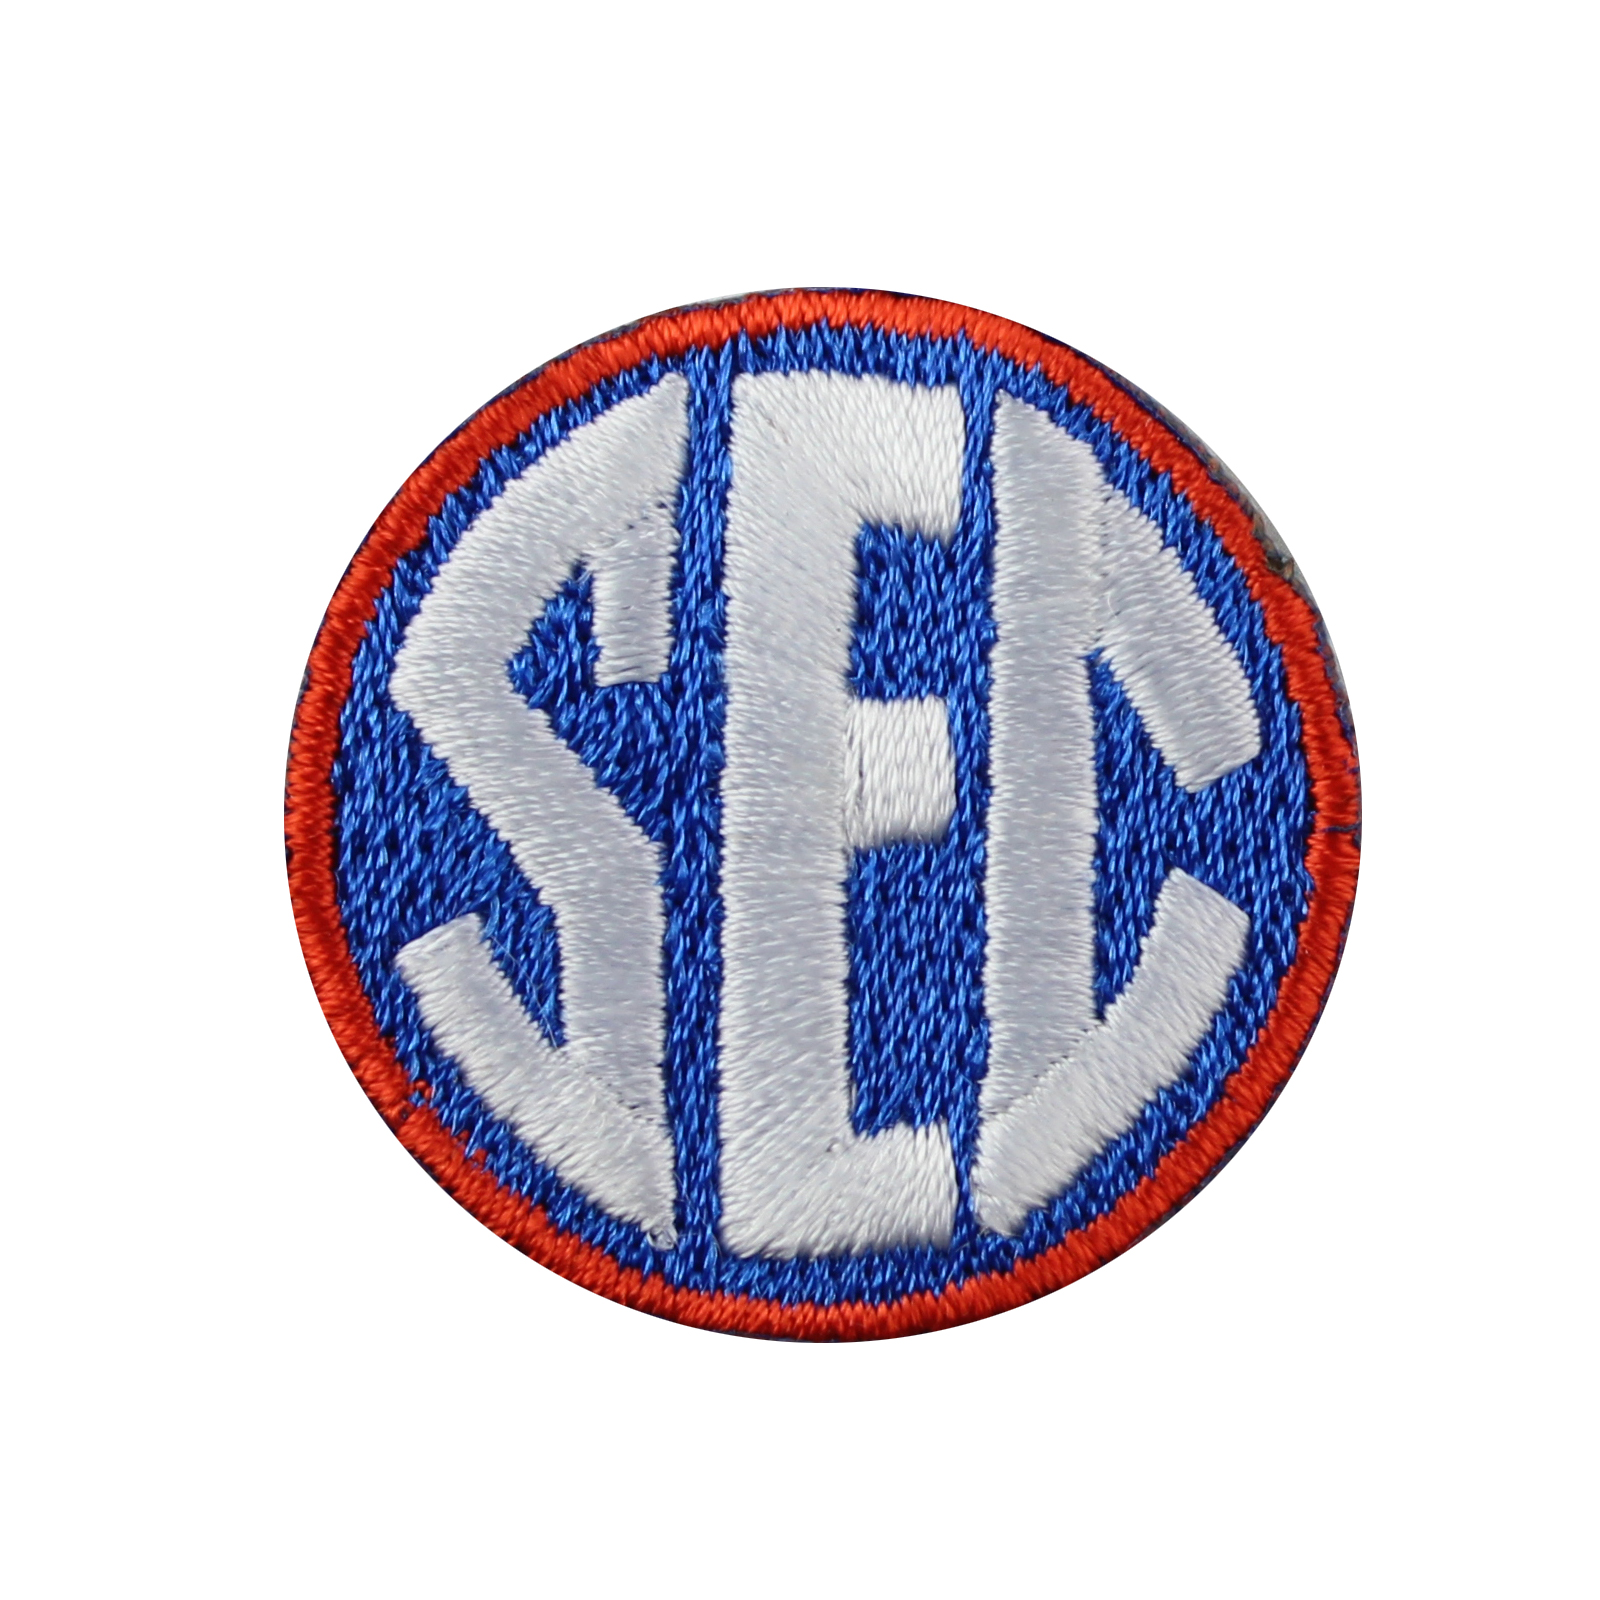 SEC Conference Team Jersey Uniform Patch Florida Gators